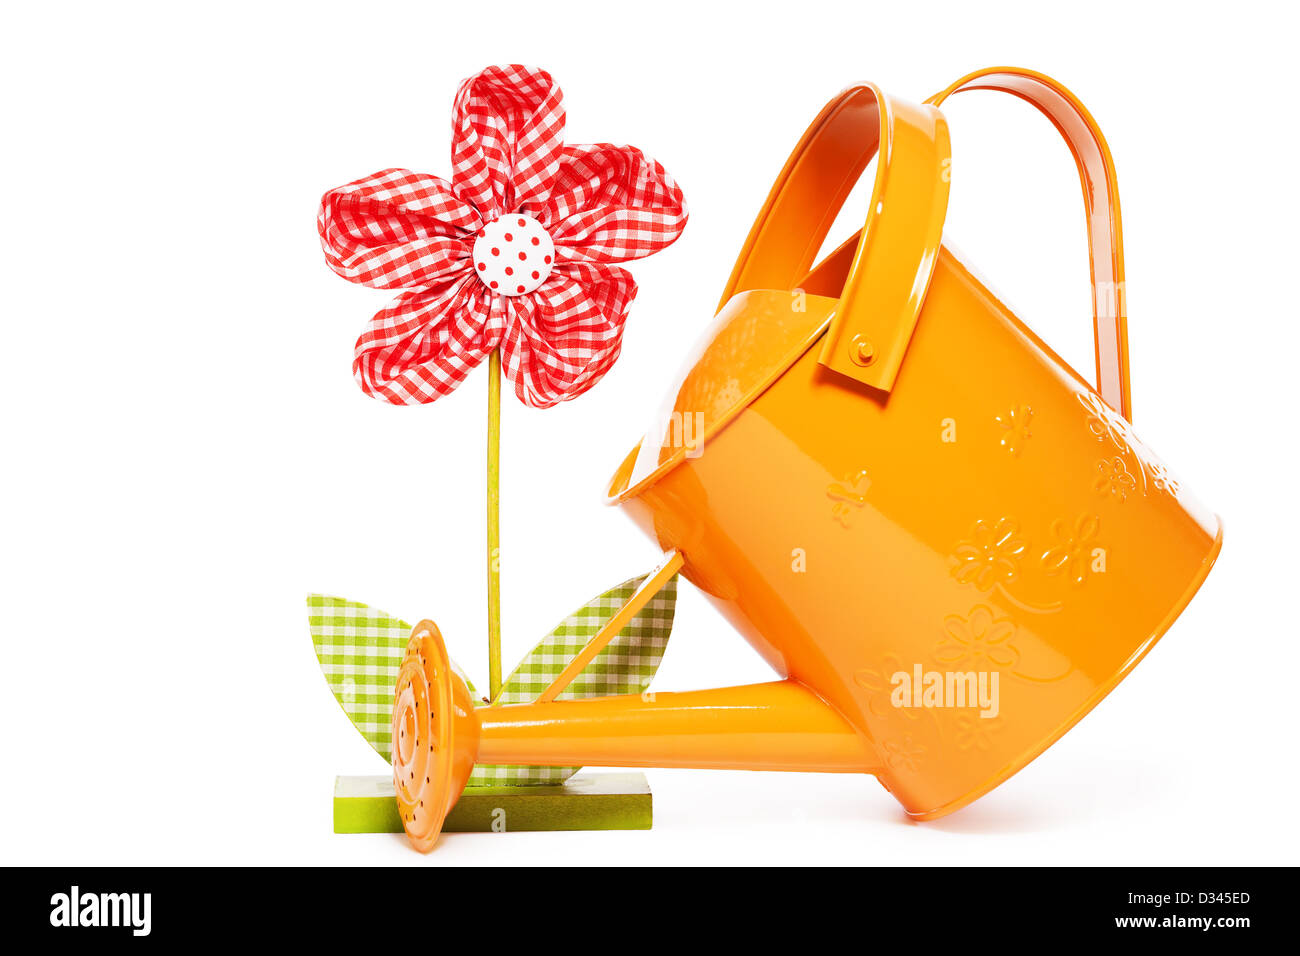 red easter drape flower with a orange watering can on white background - Stock Image